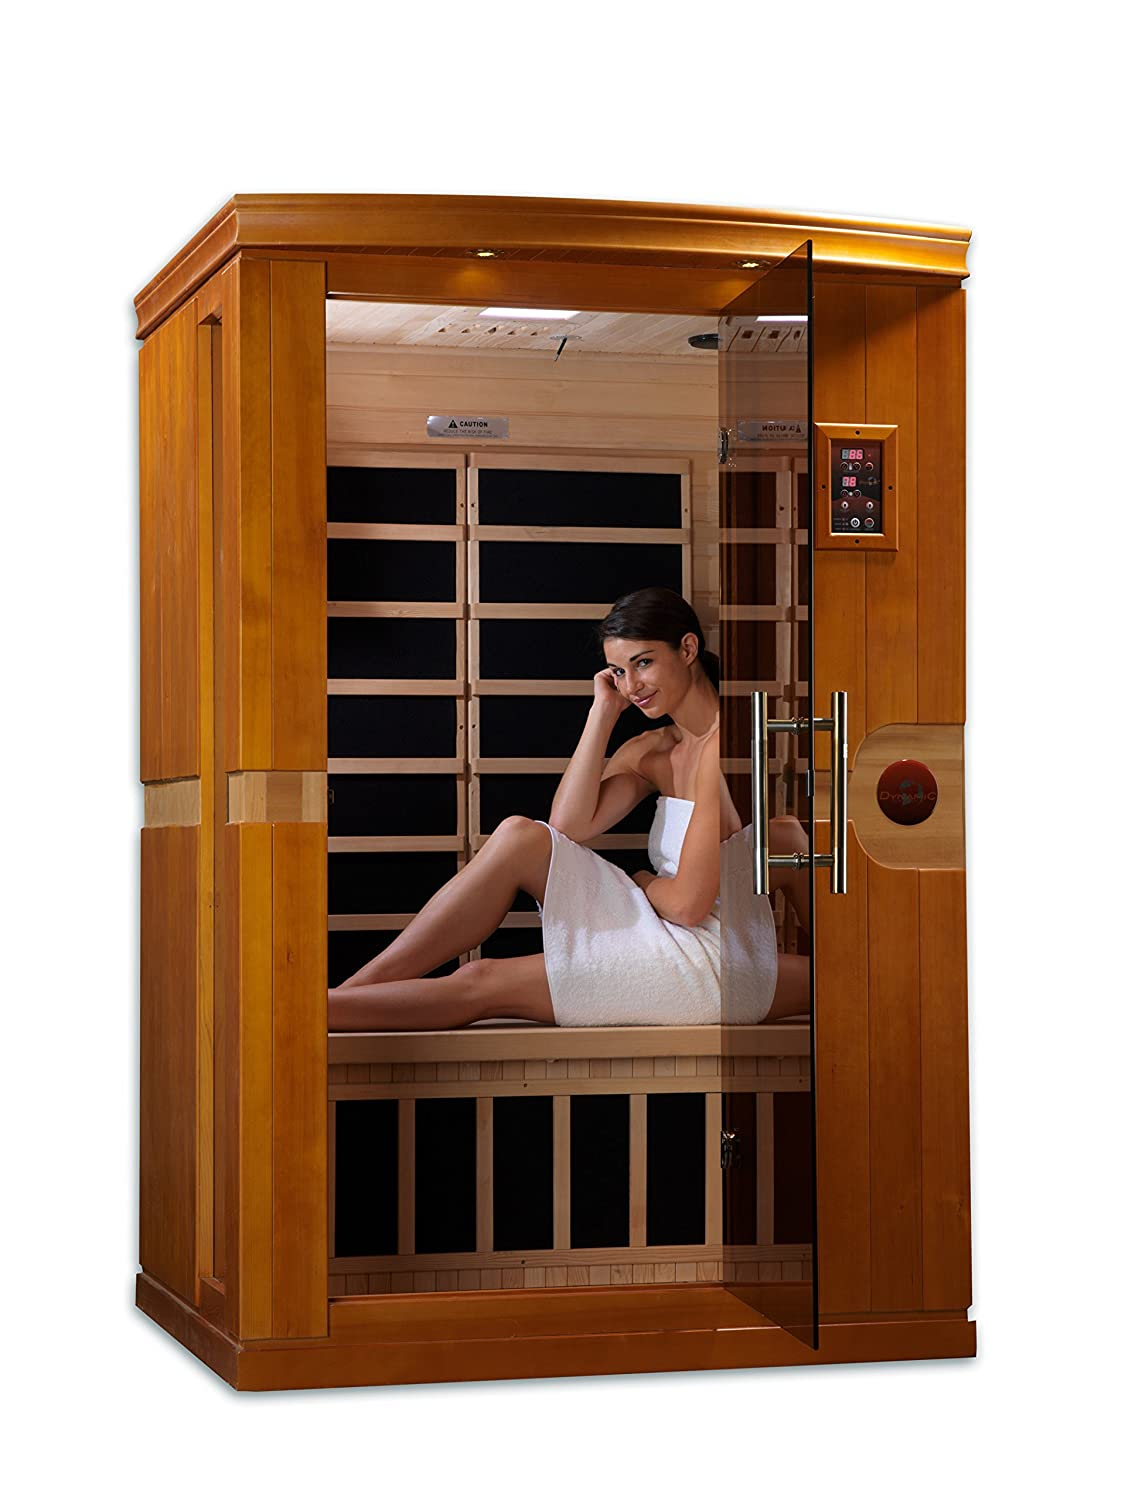 Saunas Kits Amp Accessories Health Benefits Of Sauna